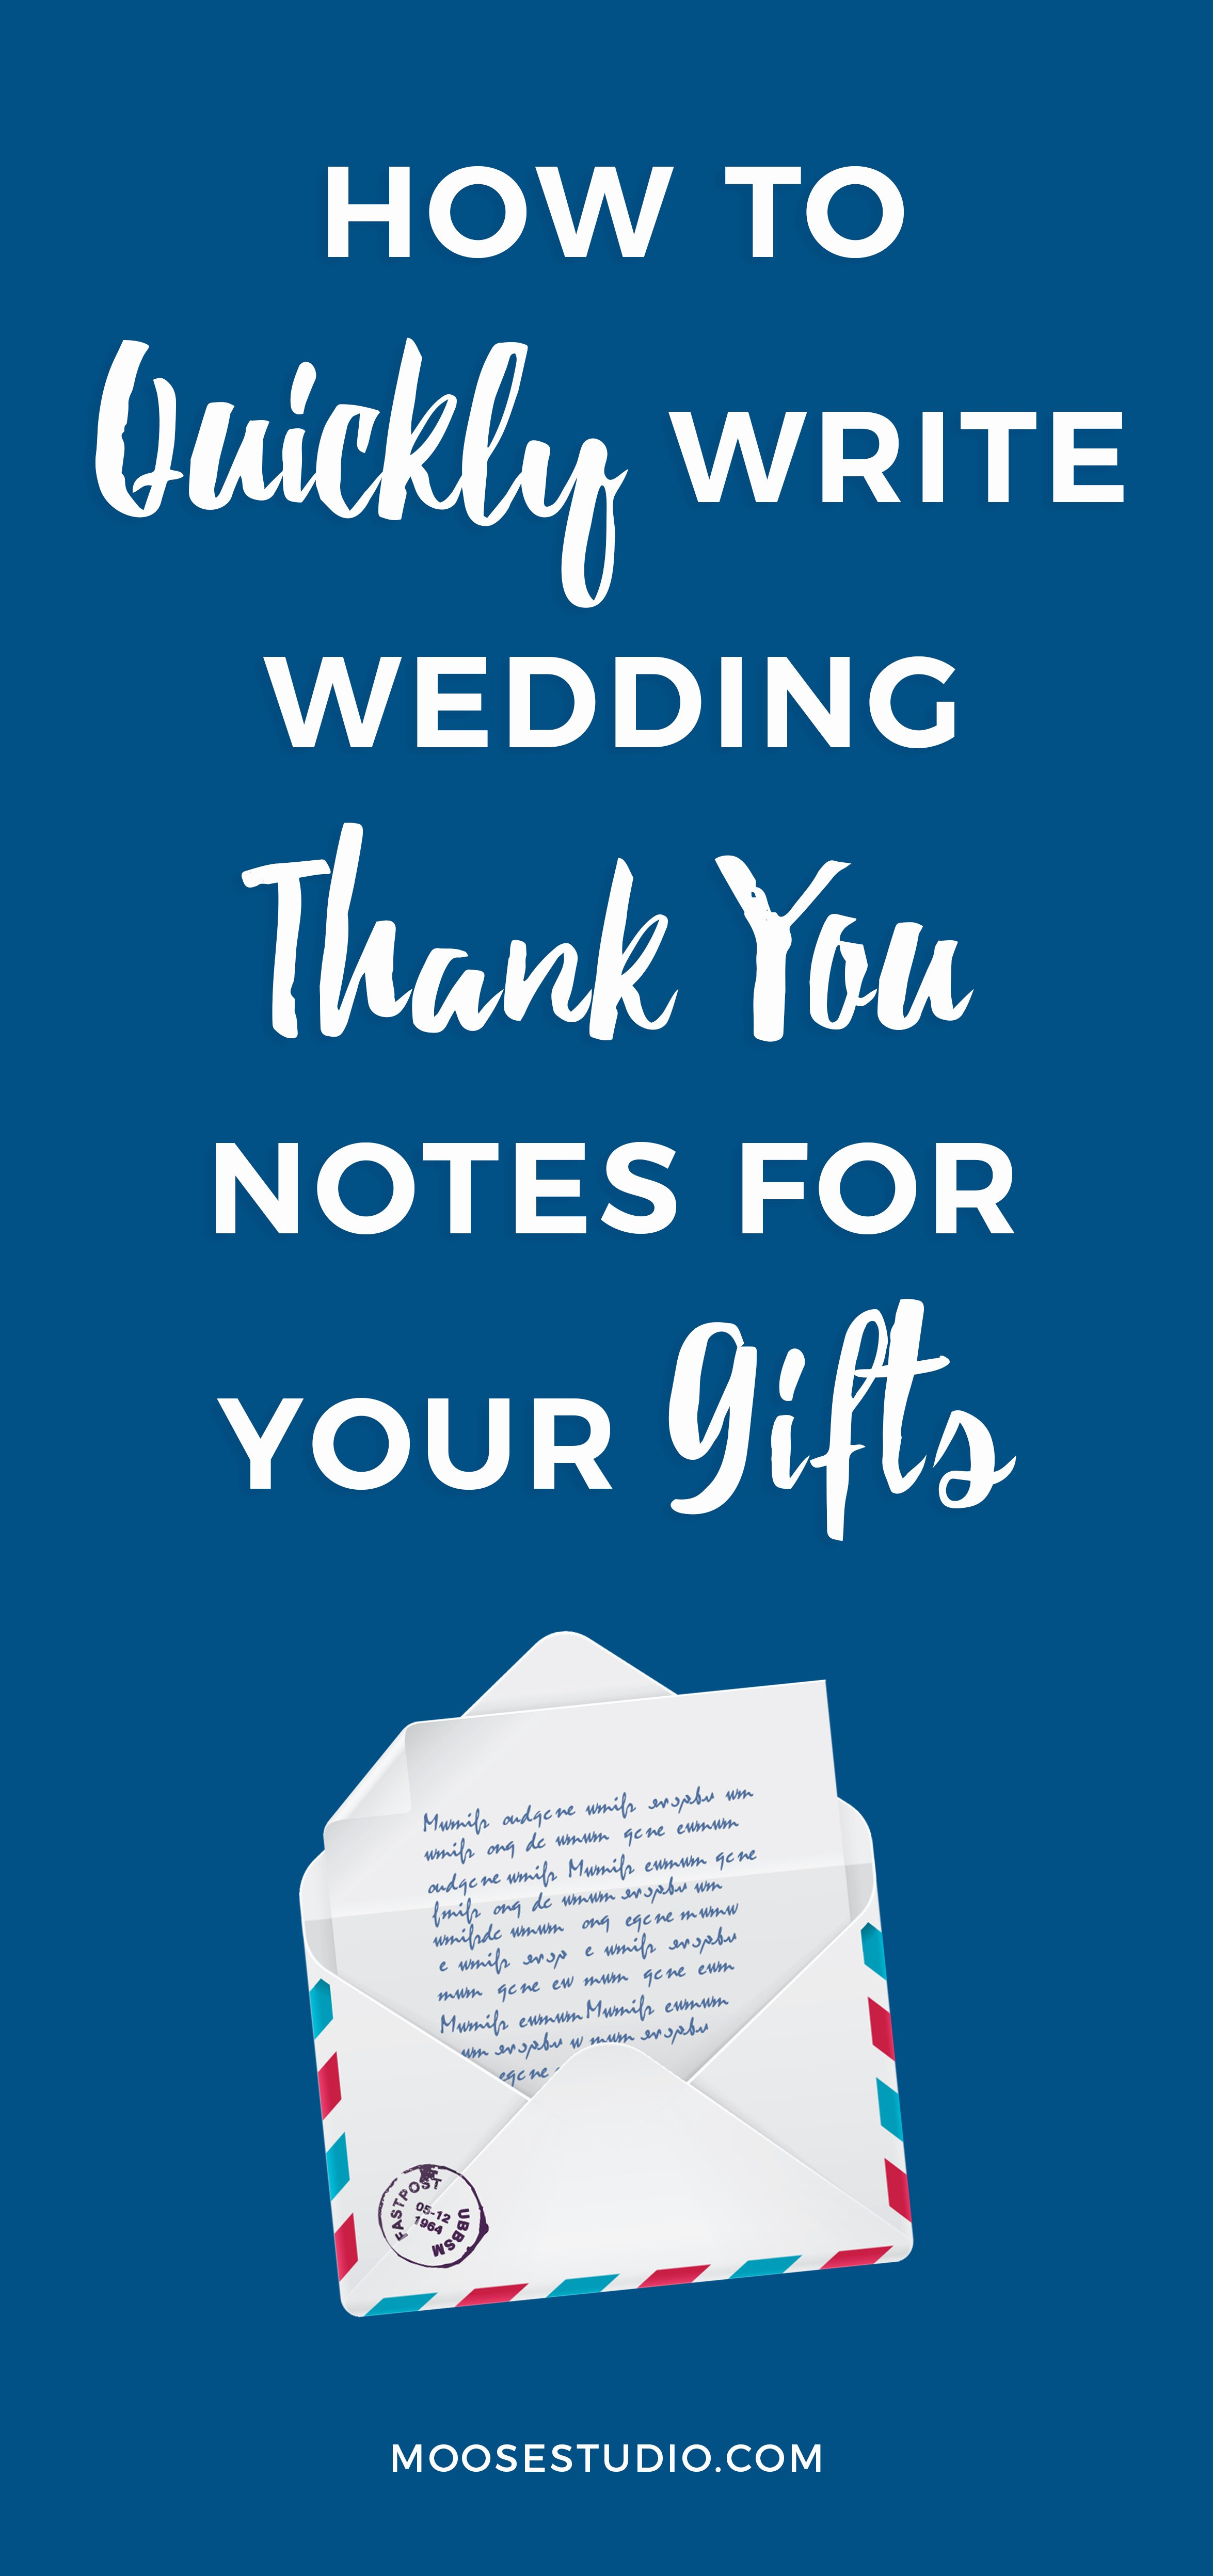 Thank You Note Wording Wedding Luxury How to Quickly Conquer the Wording for Wedding Thank You Notes